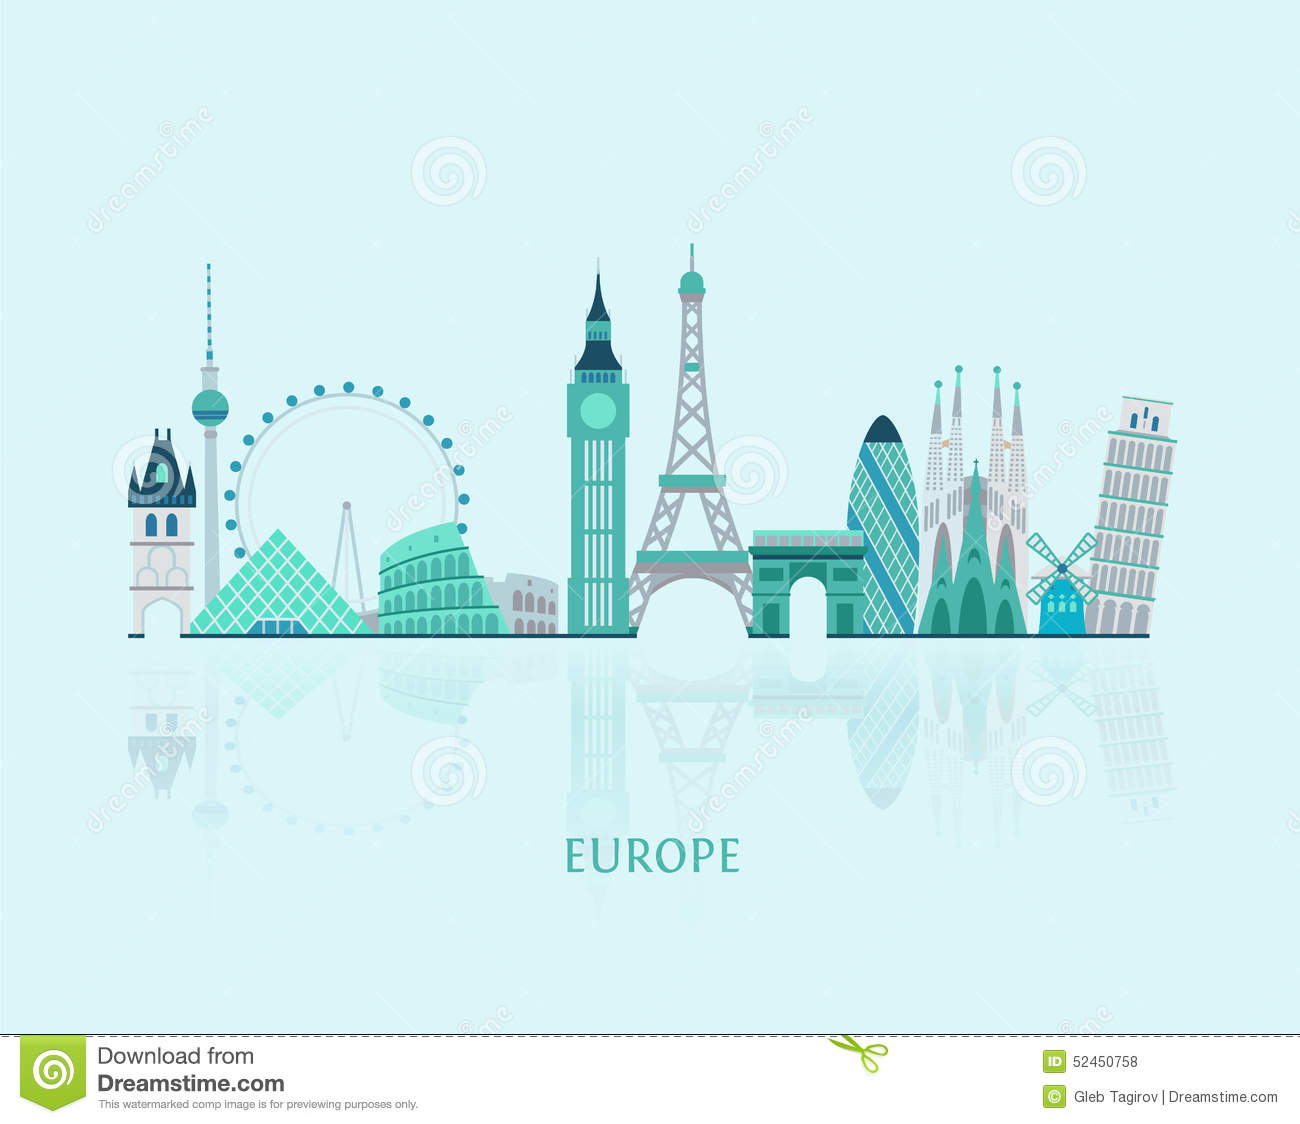 vector illustration of europe - photo #24